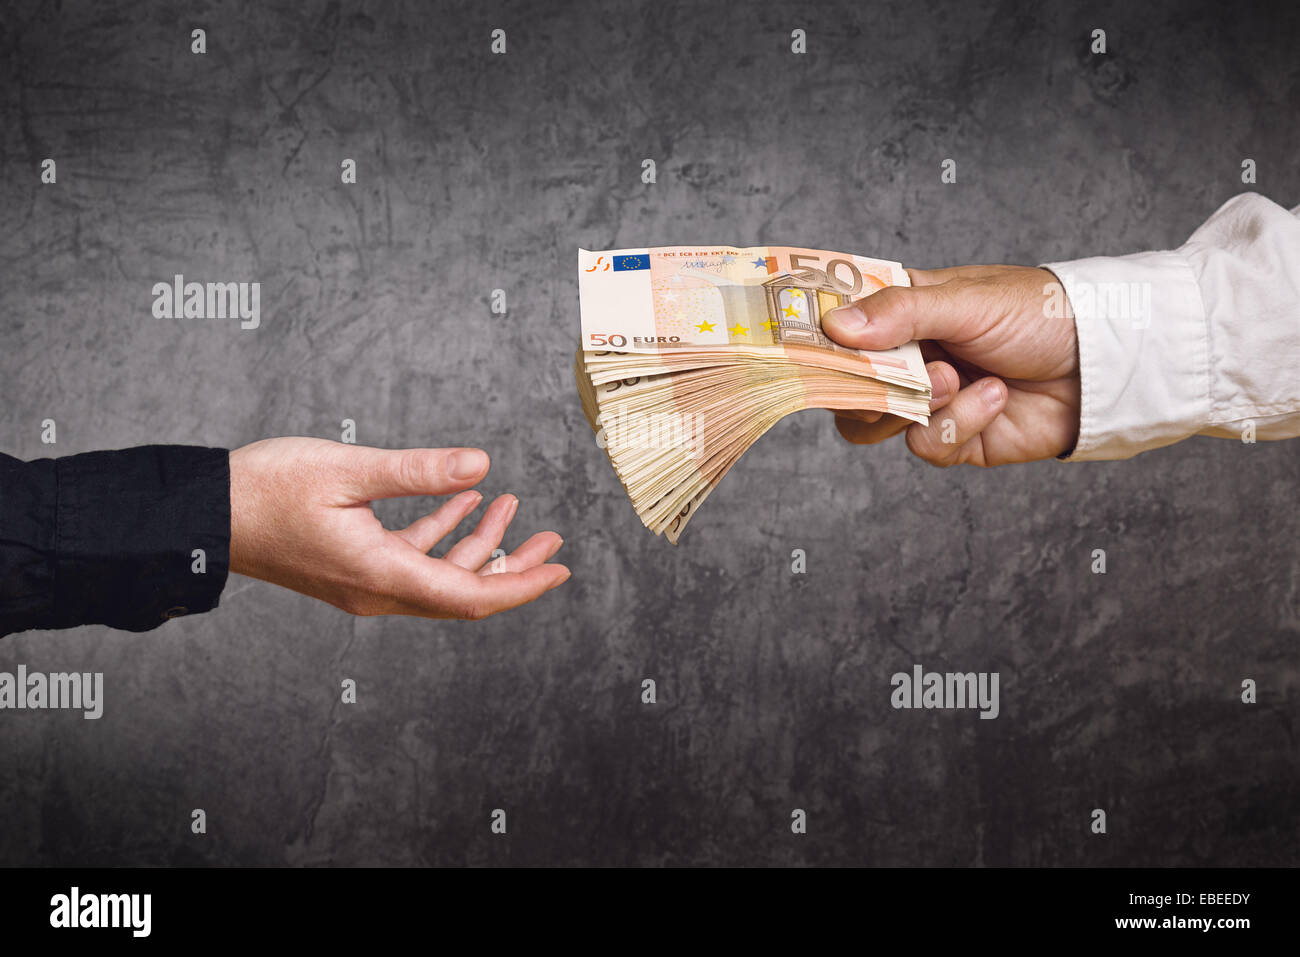 Loaning Stock Photos & Loaning Stock Images - Alamy